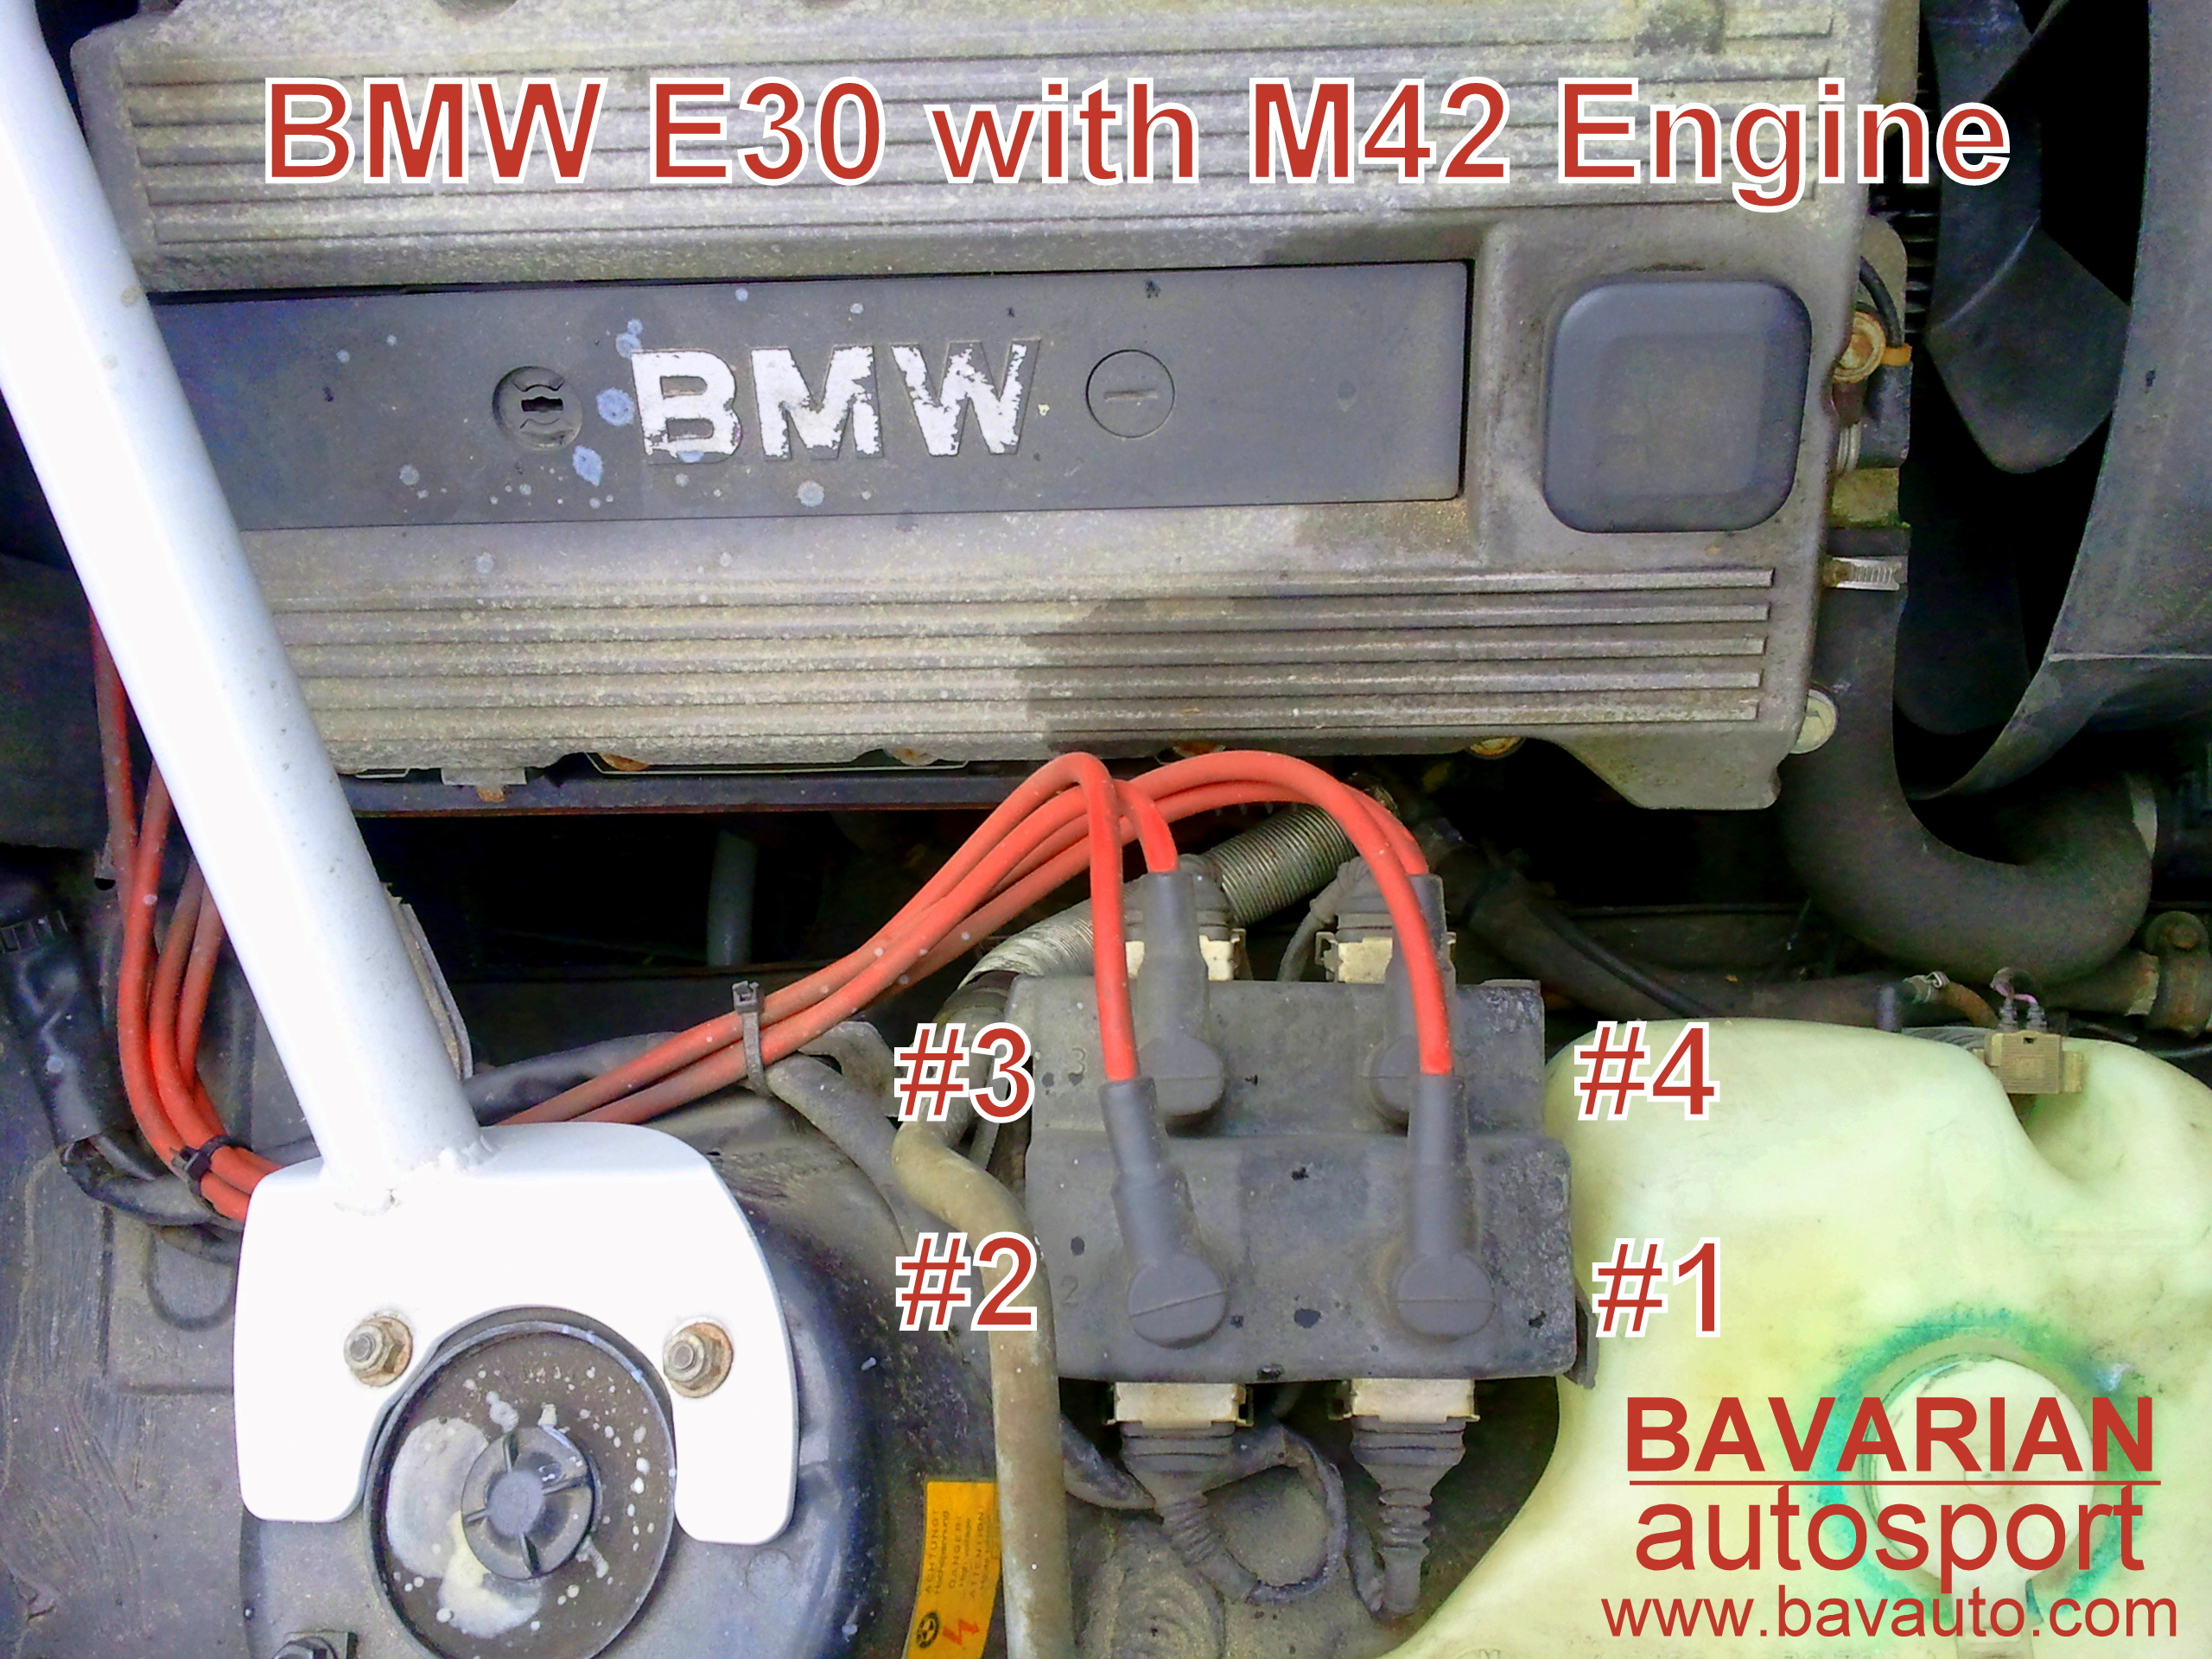 1994 318i spark plug wire replacement